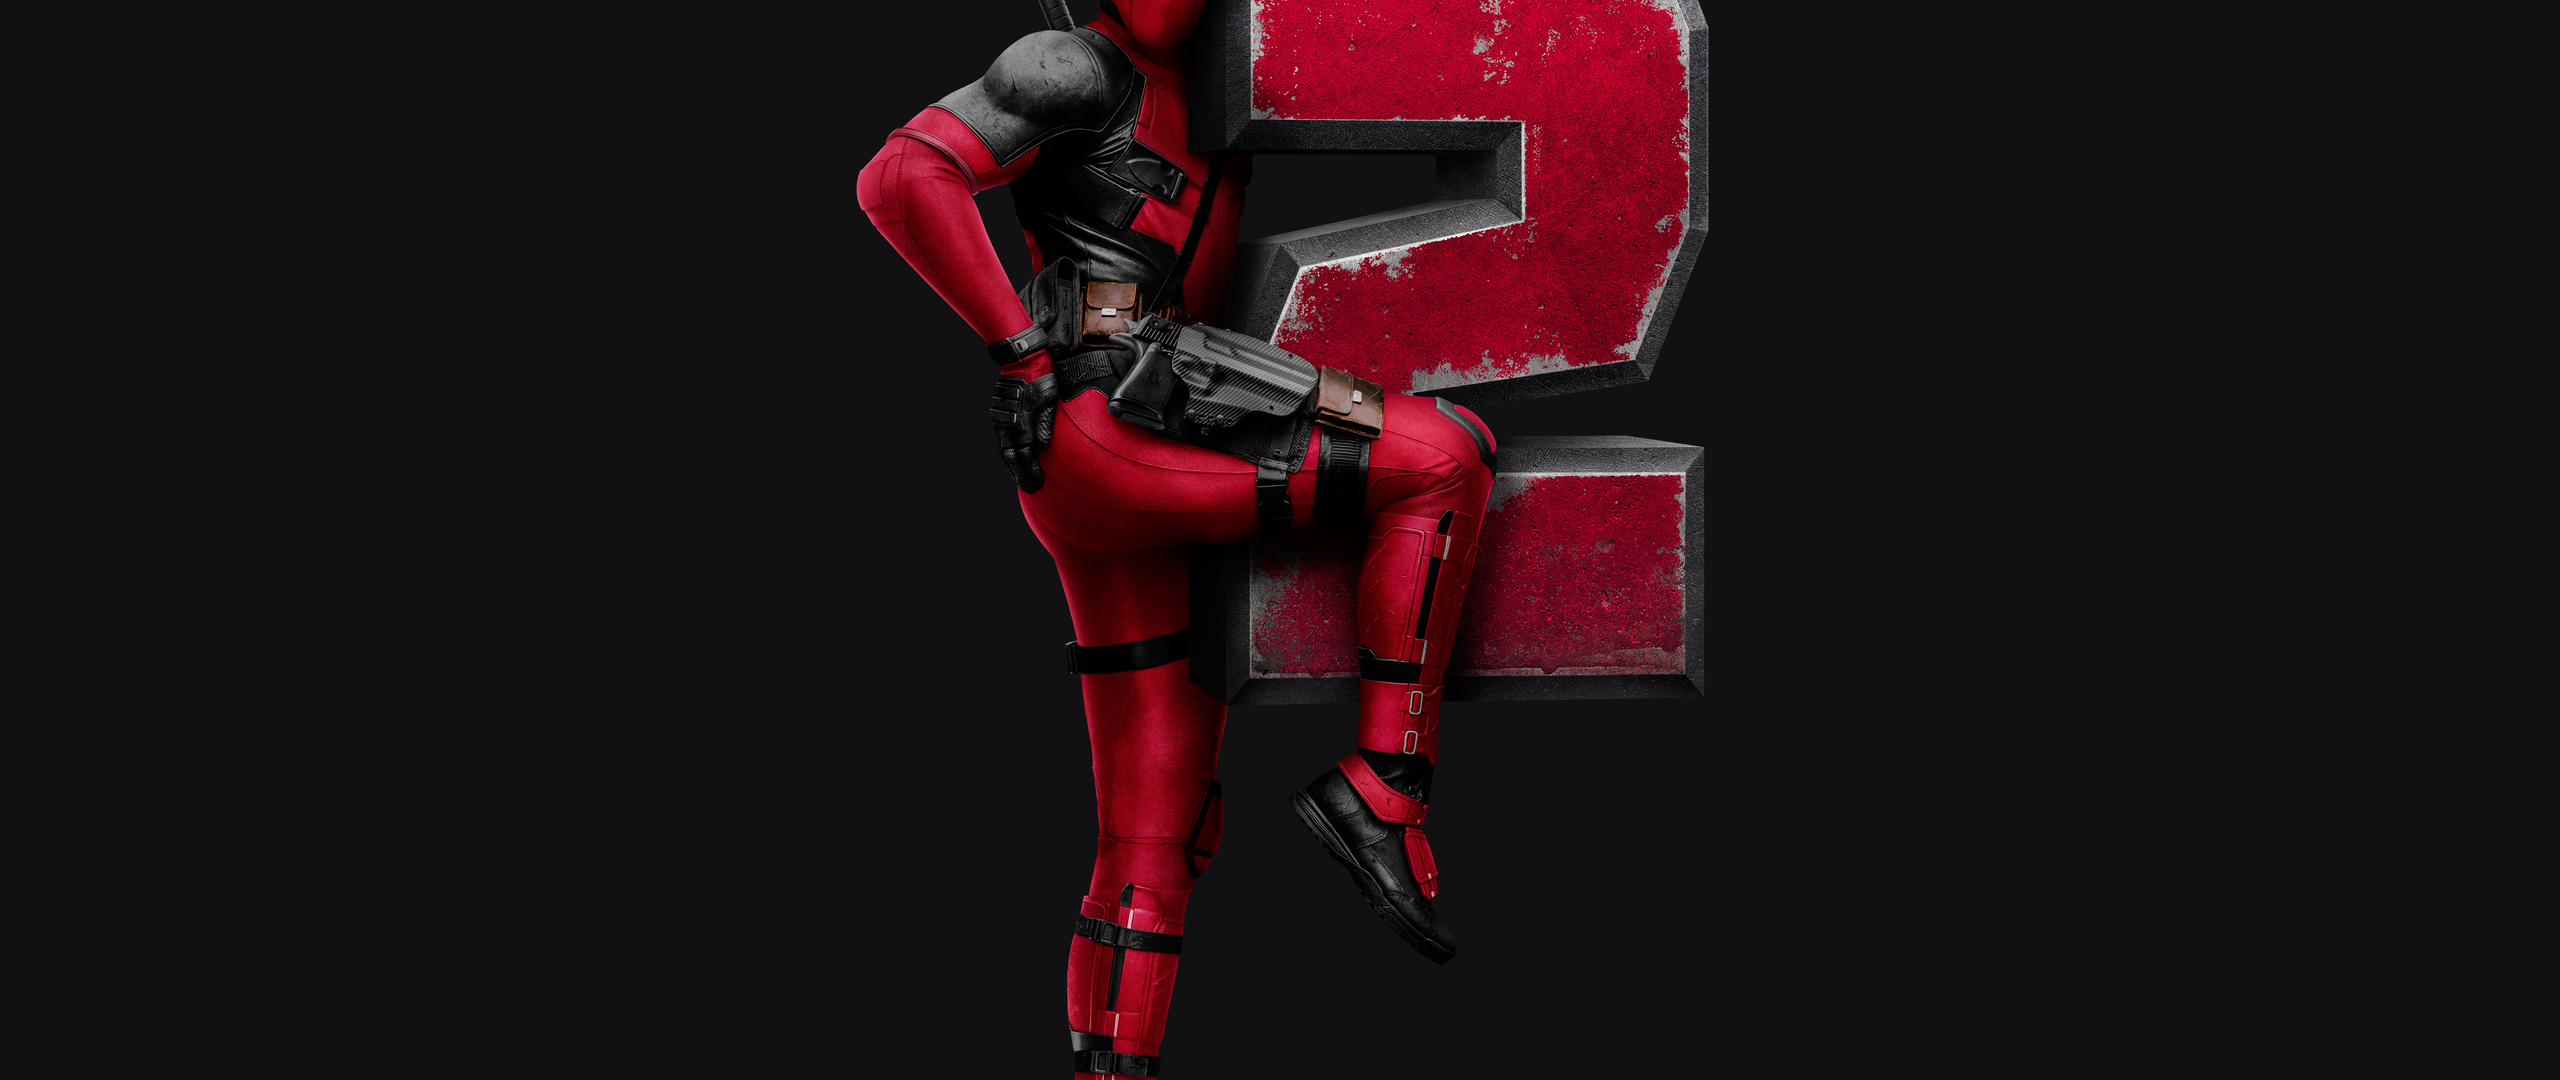 deadpool-2-dark-8k-53.jpg